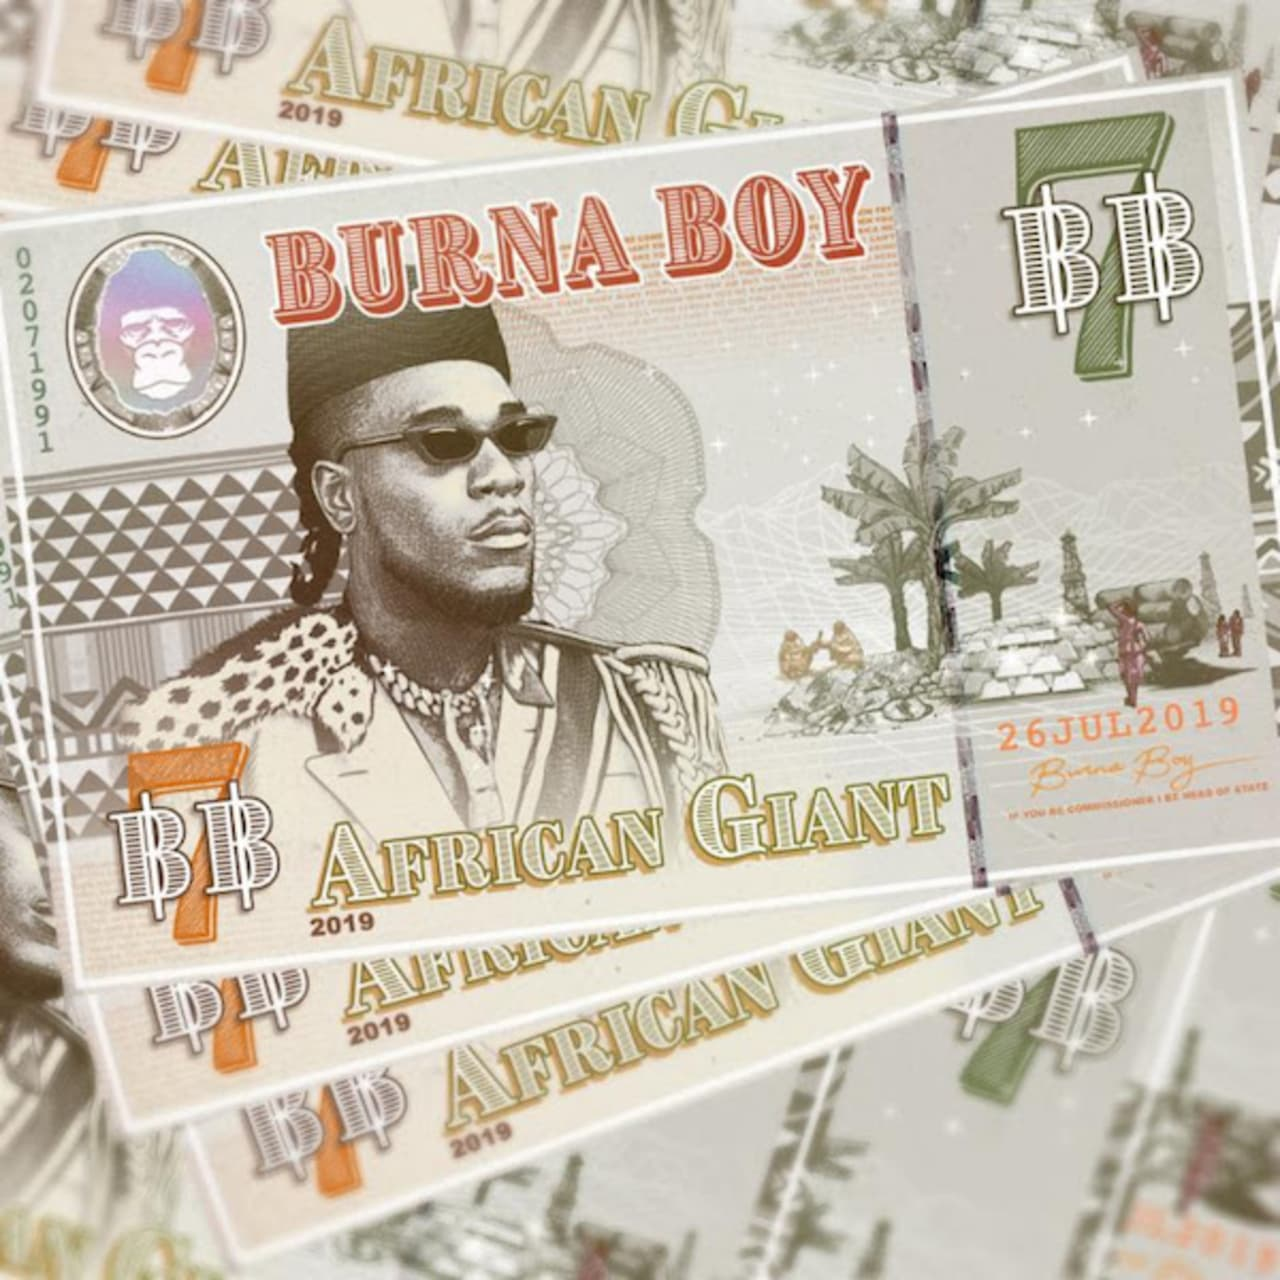 Image result for african giant burna boy album cover